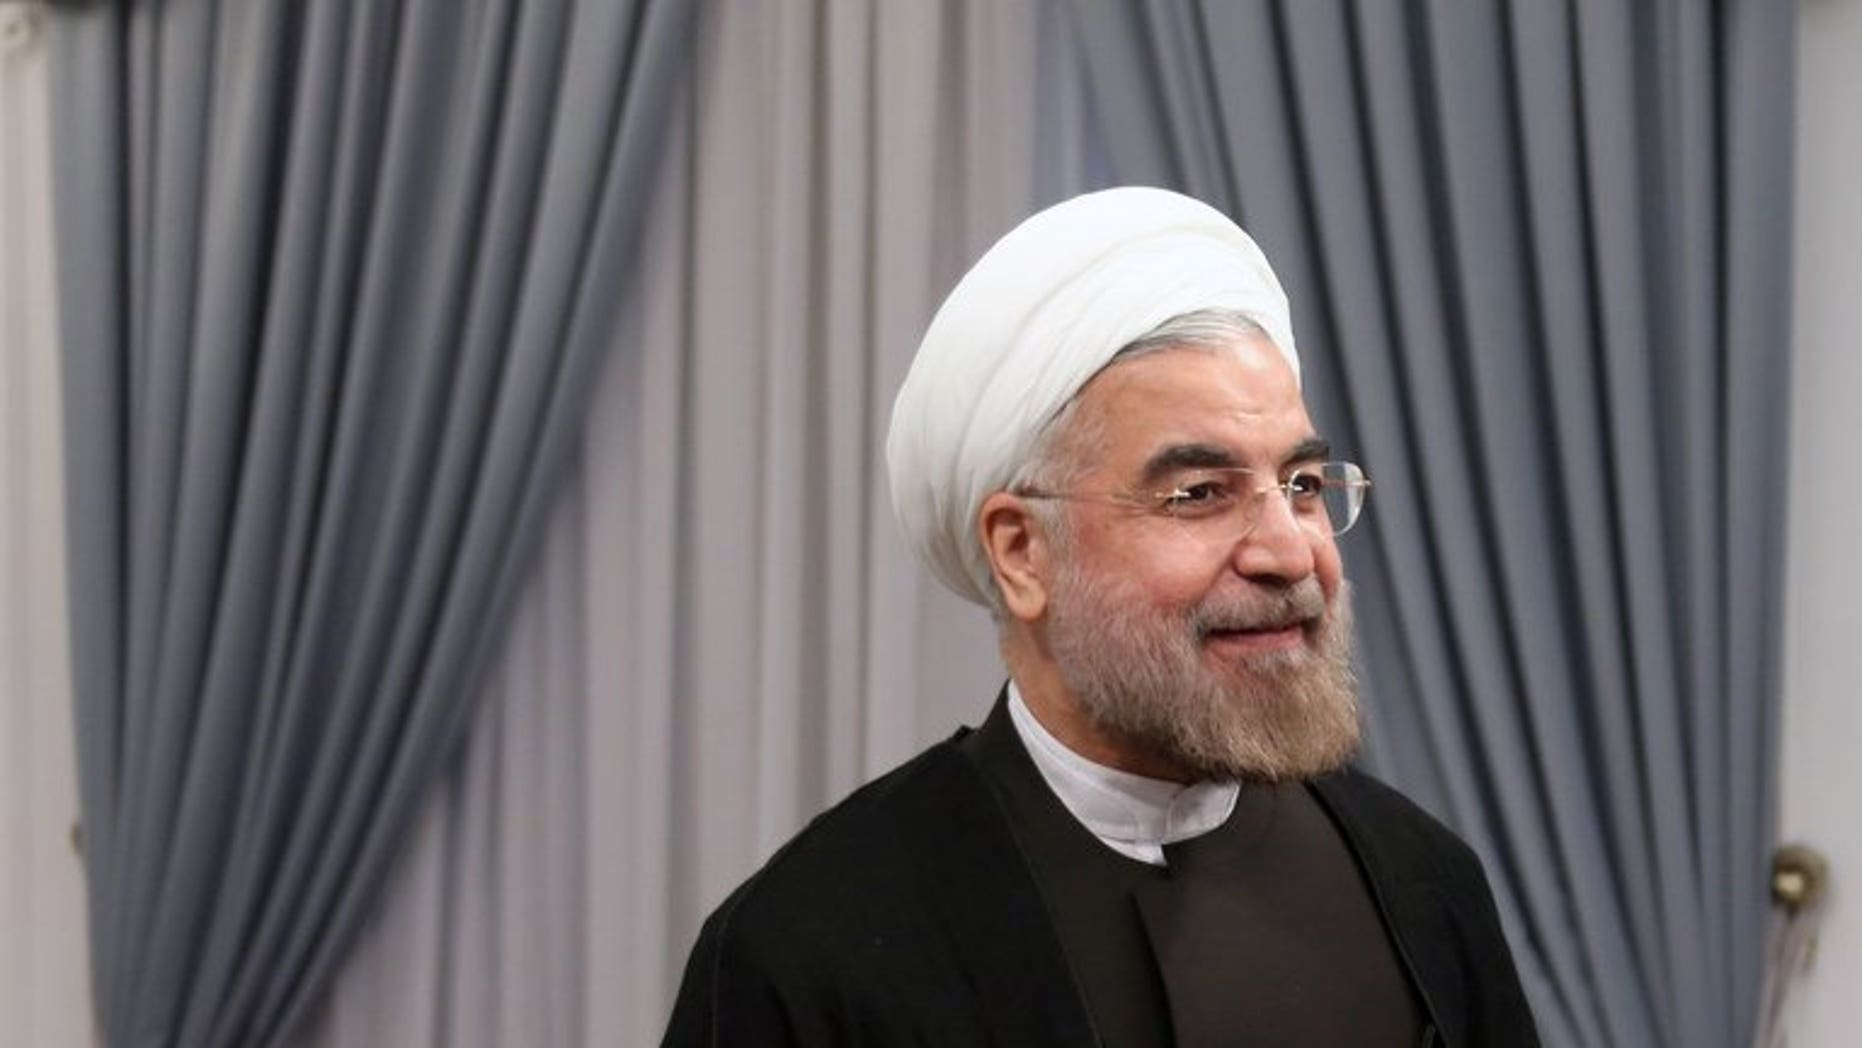 Iran's new President Hassan Rowhani is seen on his first official day in office in Tehran on August 3, 2013. Rowhani took the oath before parliament on Sunday, at a ceremony attended for the first time by foreign dignitaries including regional leaders.